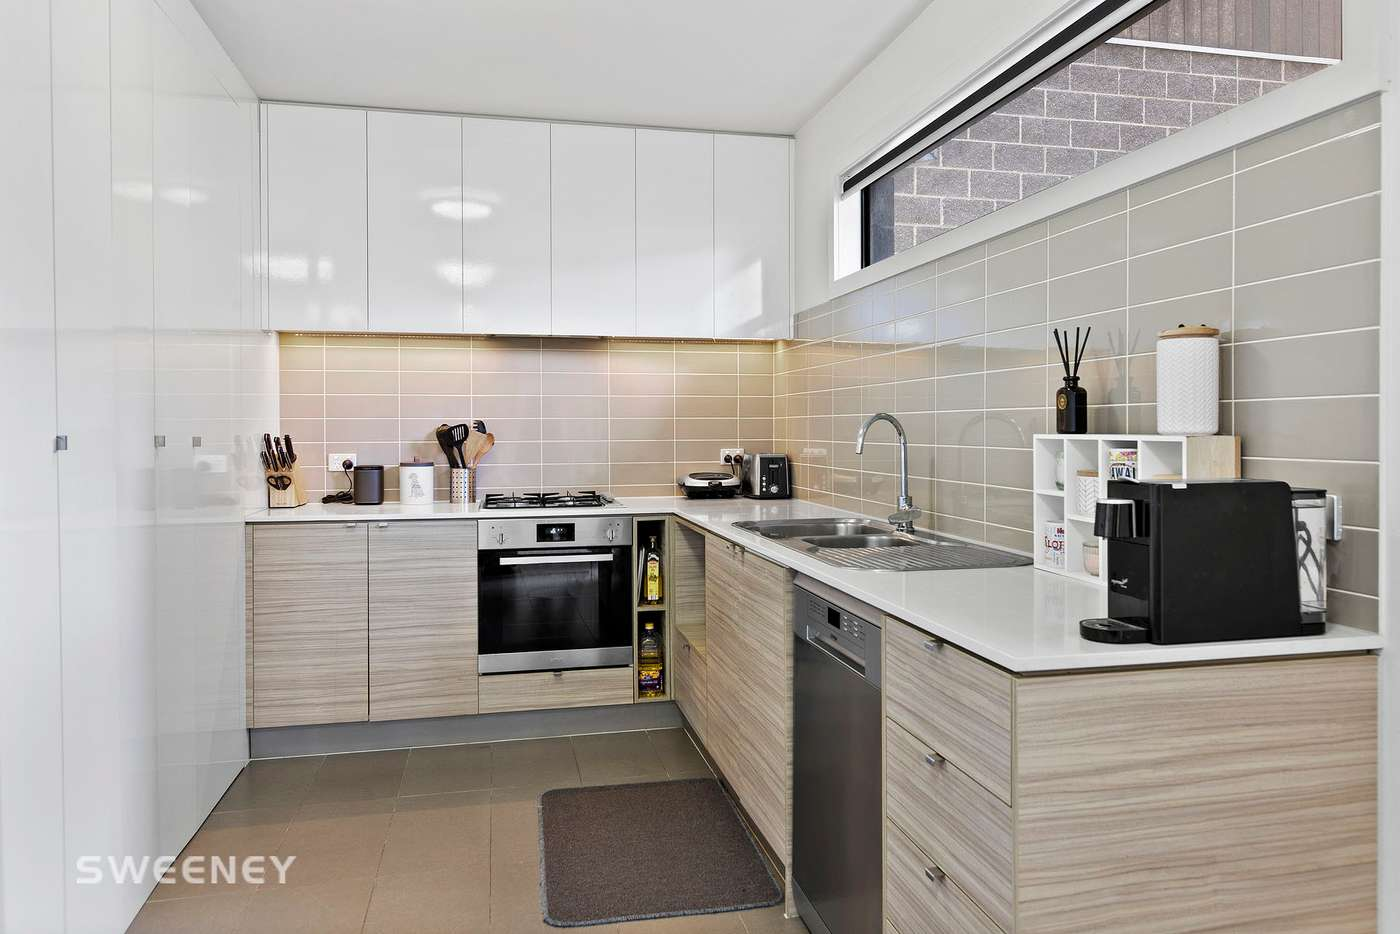 Main view of Homely apartment listing, 3 Song Street, Sunshine West VIC 3020